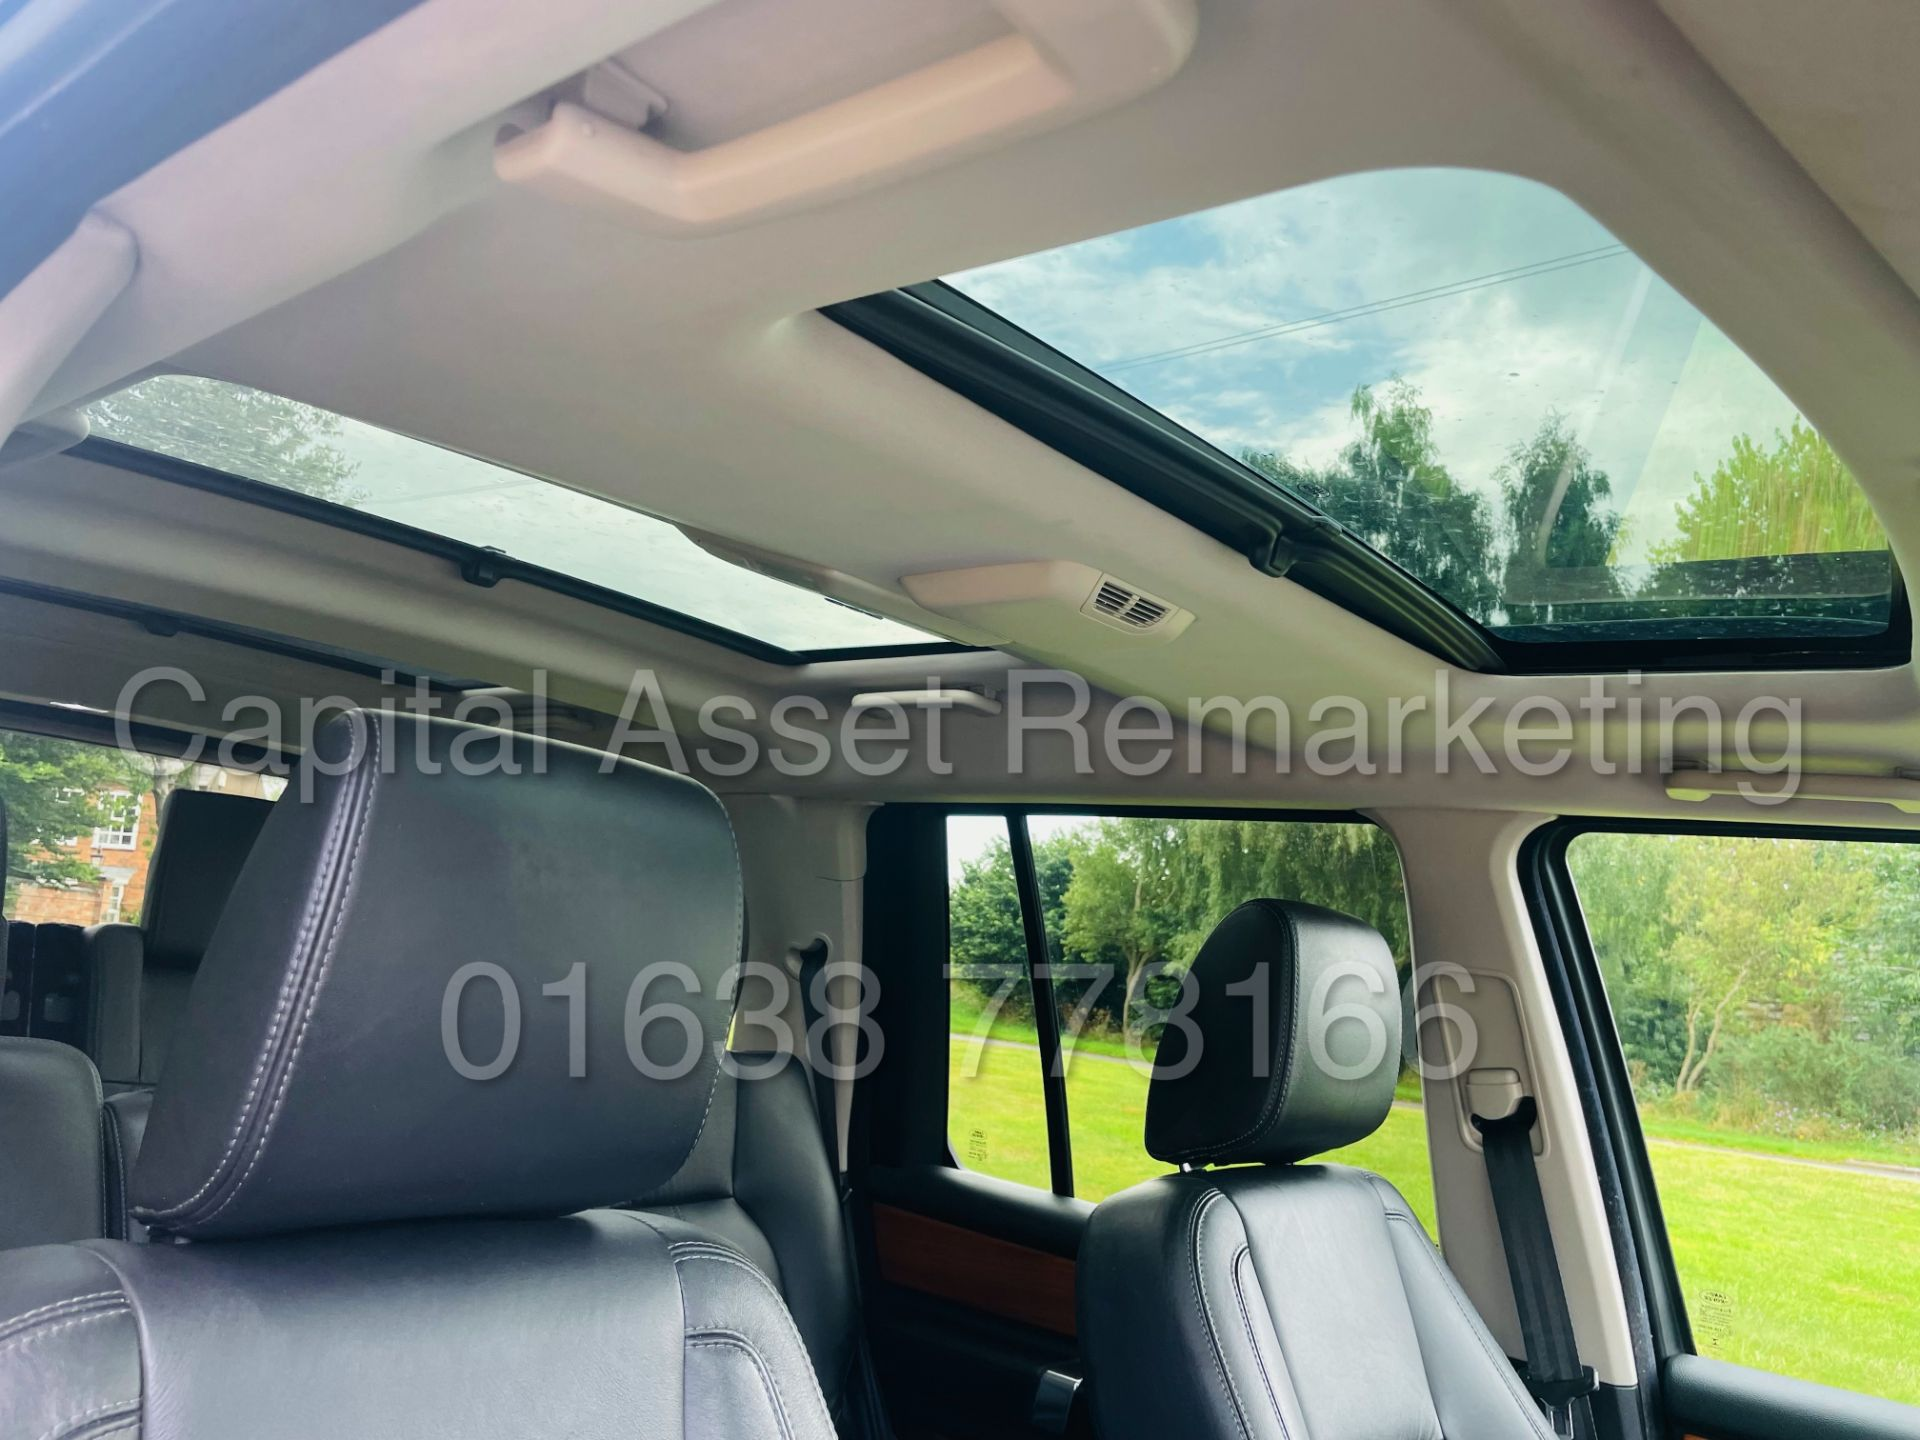 LAND ROVER DISCOVERY 4 *HSE* 7 SEATER SUV (2014 - NEW MODEL) '3.0 SDV6 - 255 BHP - 8 SPEED AUTO' - Image 49 of 61